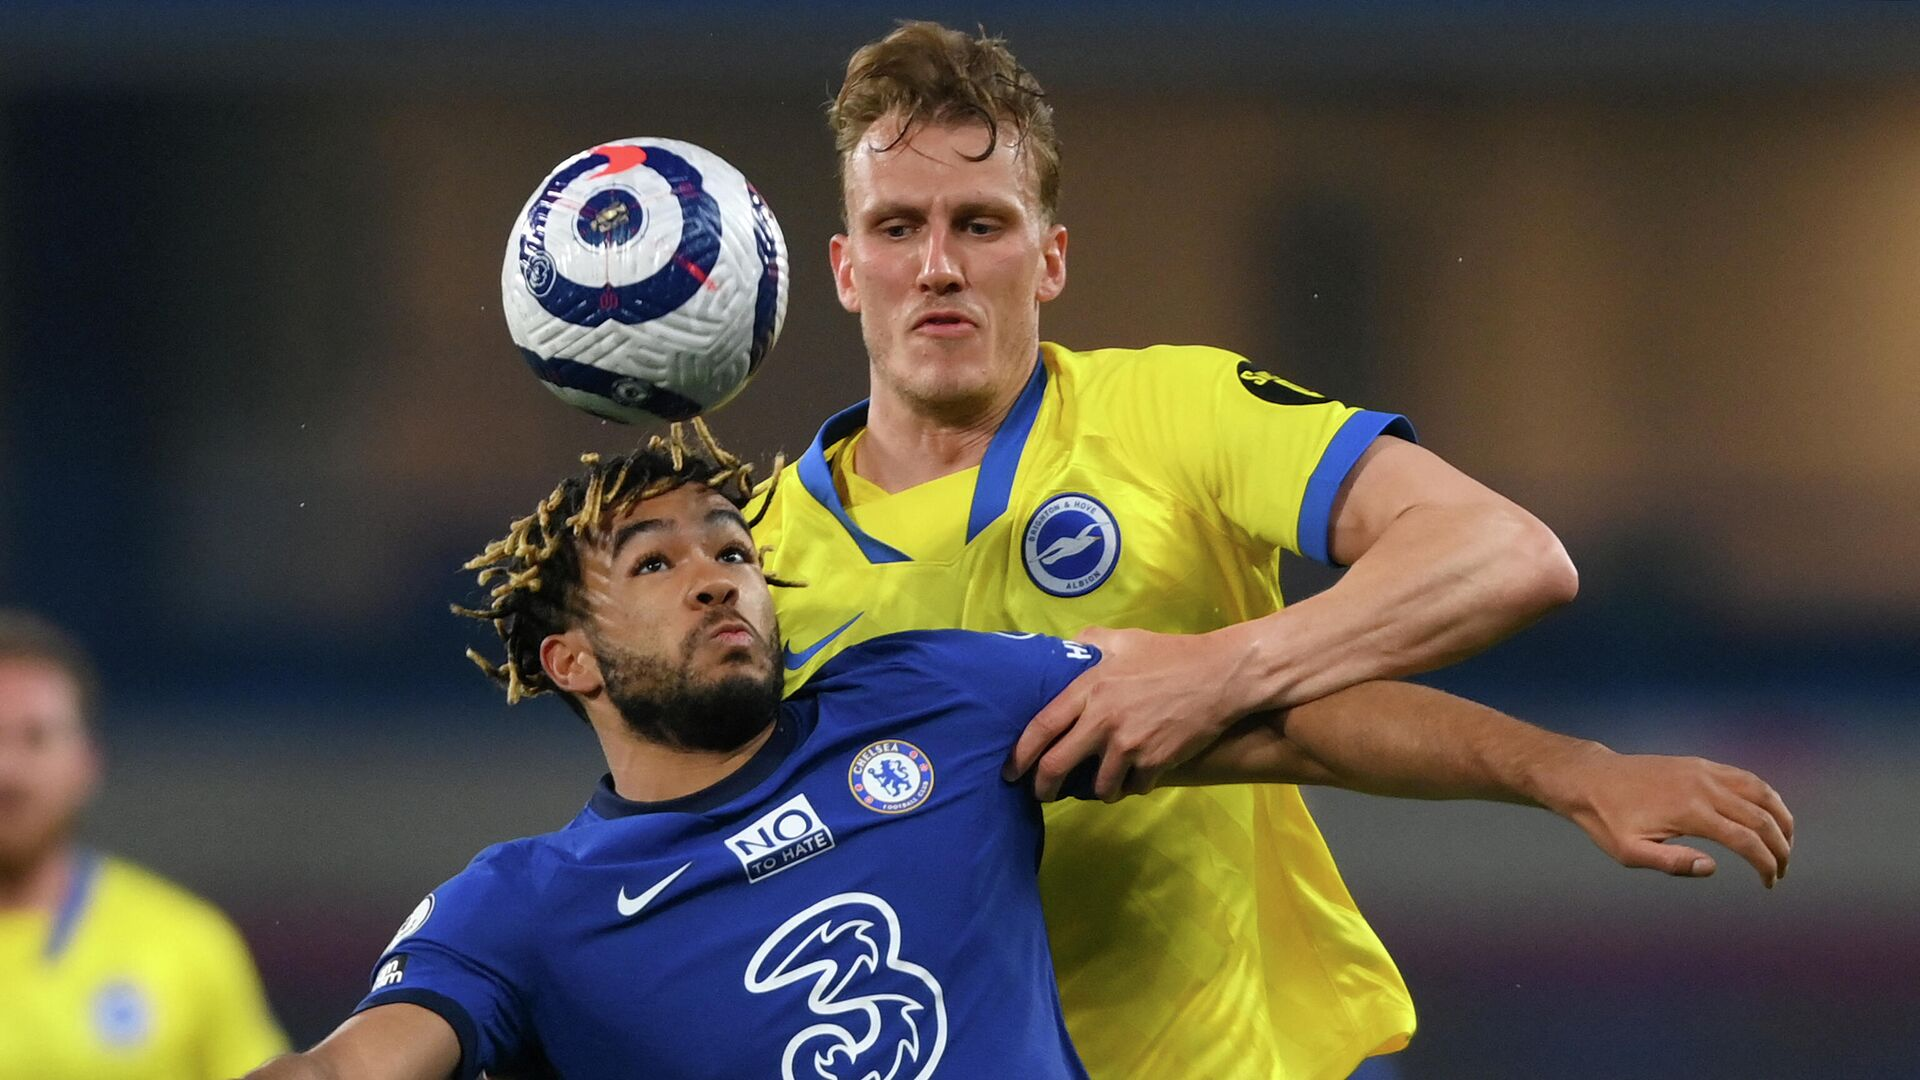 Chelsea's English defender Reece James (L) vies with Brighton's English defender Dan Burn during the English Premier League football match between Chelsea and Brighton and Hove Albion at Stamford Bridge in London on April 20, 2021. (Photo by Mike Hewitt / POOL / AFP) / RESTRICTED TO EDITORIAL USE. No use with unauthorized audio, video, data, fixture lists, club/league logos or 'live' services. Online in-match use limited to 120 images. An additional 40 images may be used in extra time. No video emulation. Social media in-match use limited to 120 images. An additional 40 images may be used in extra time. No use in betting publications, games or single club/league/player publications. /  - РИА Новости, 1920, 21.04.2021